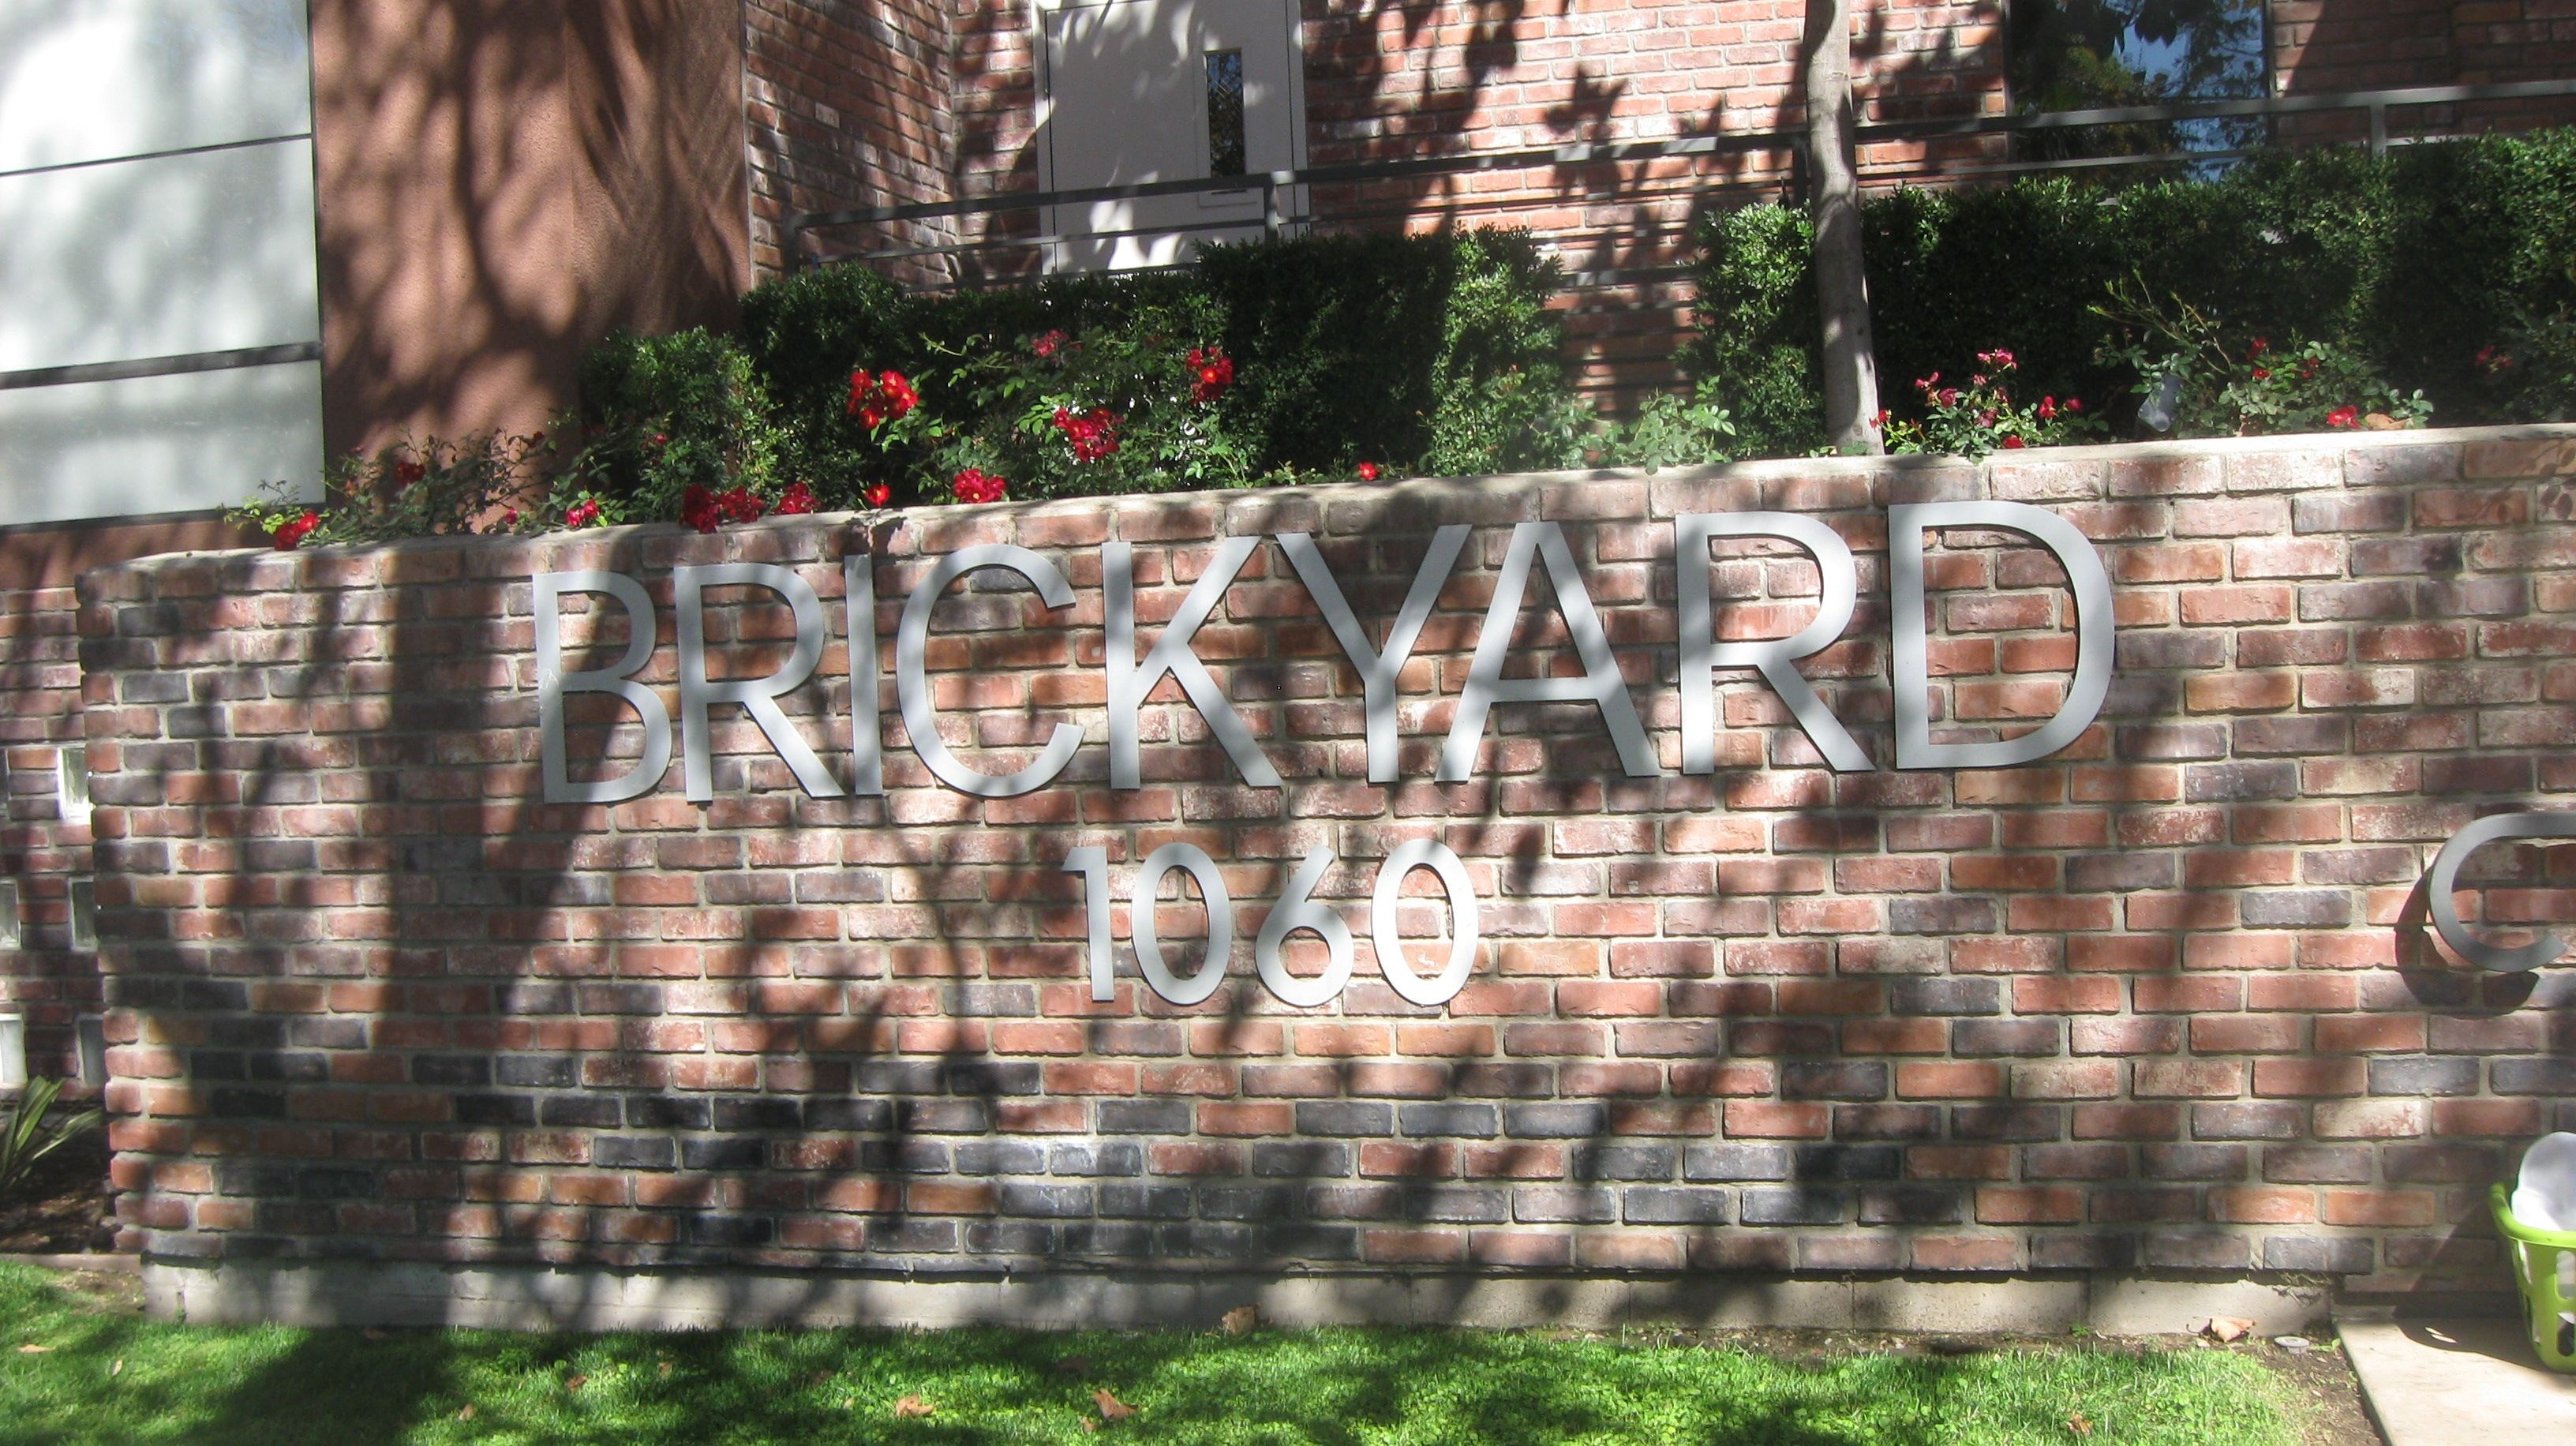 Brickyard San Jose